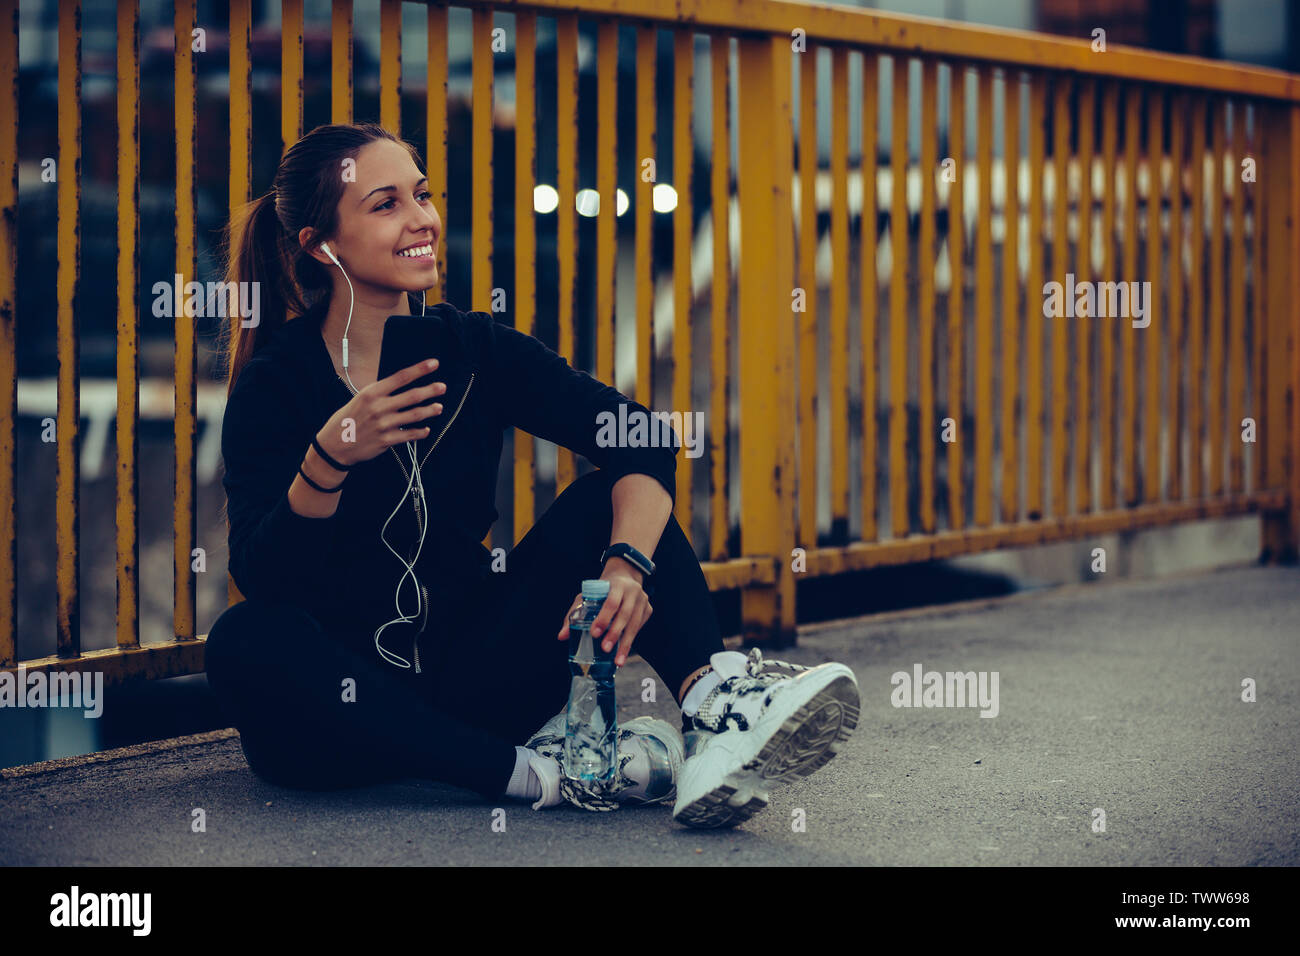 Young woman in black sports outfit resting while listening to music on her smartphone after running on the bridge, at night. - Stock Image